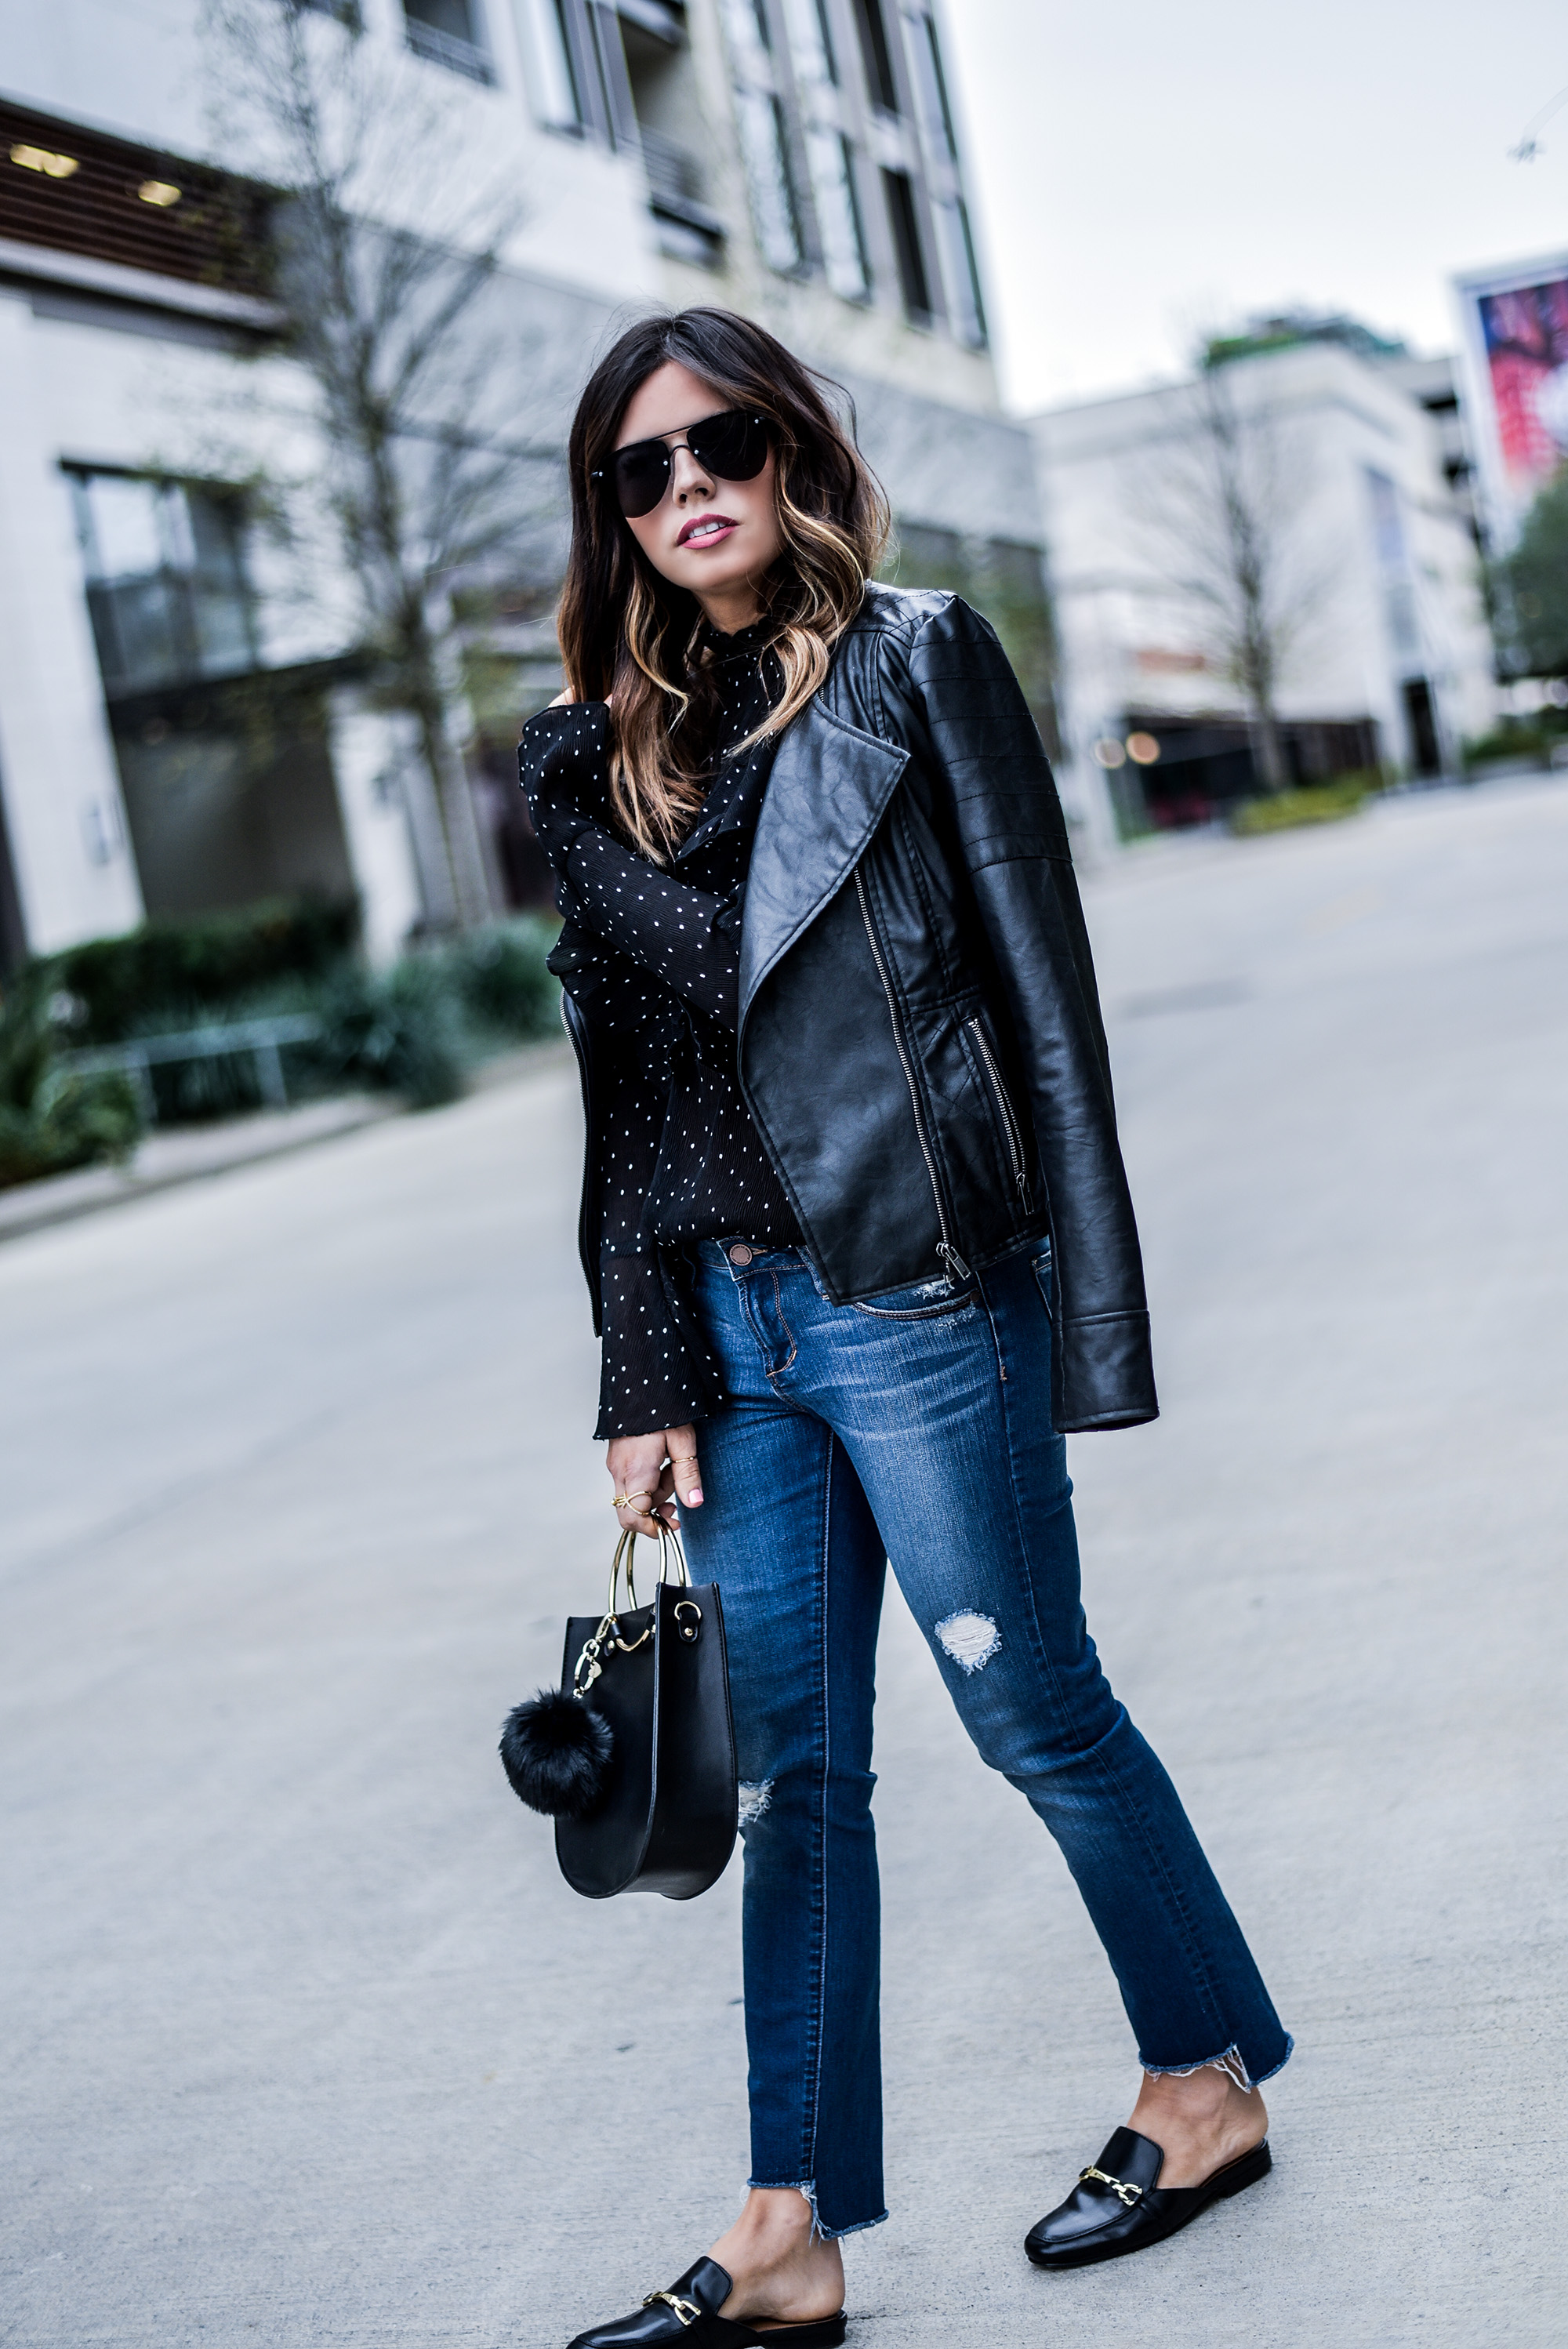 Houston fashion blogger Tiffany Jais wearing nordstrom raw hem jeans, and ASOS mules, with a leather jacket | What's trending in women's fashion